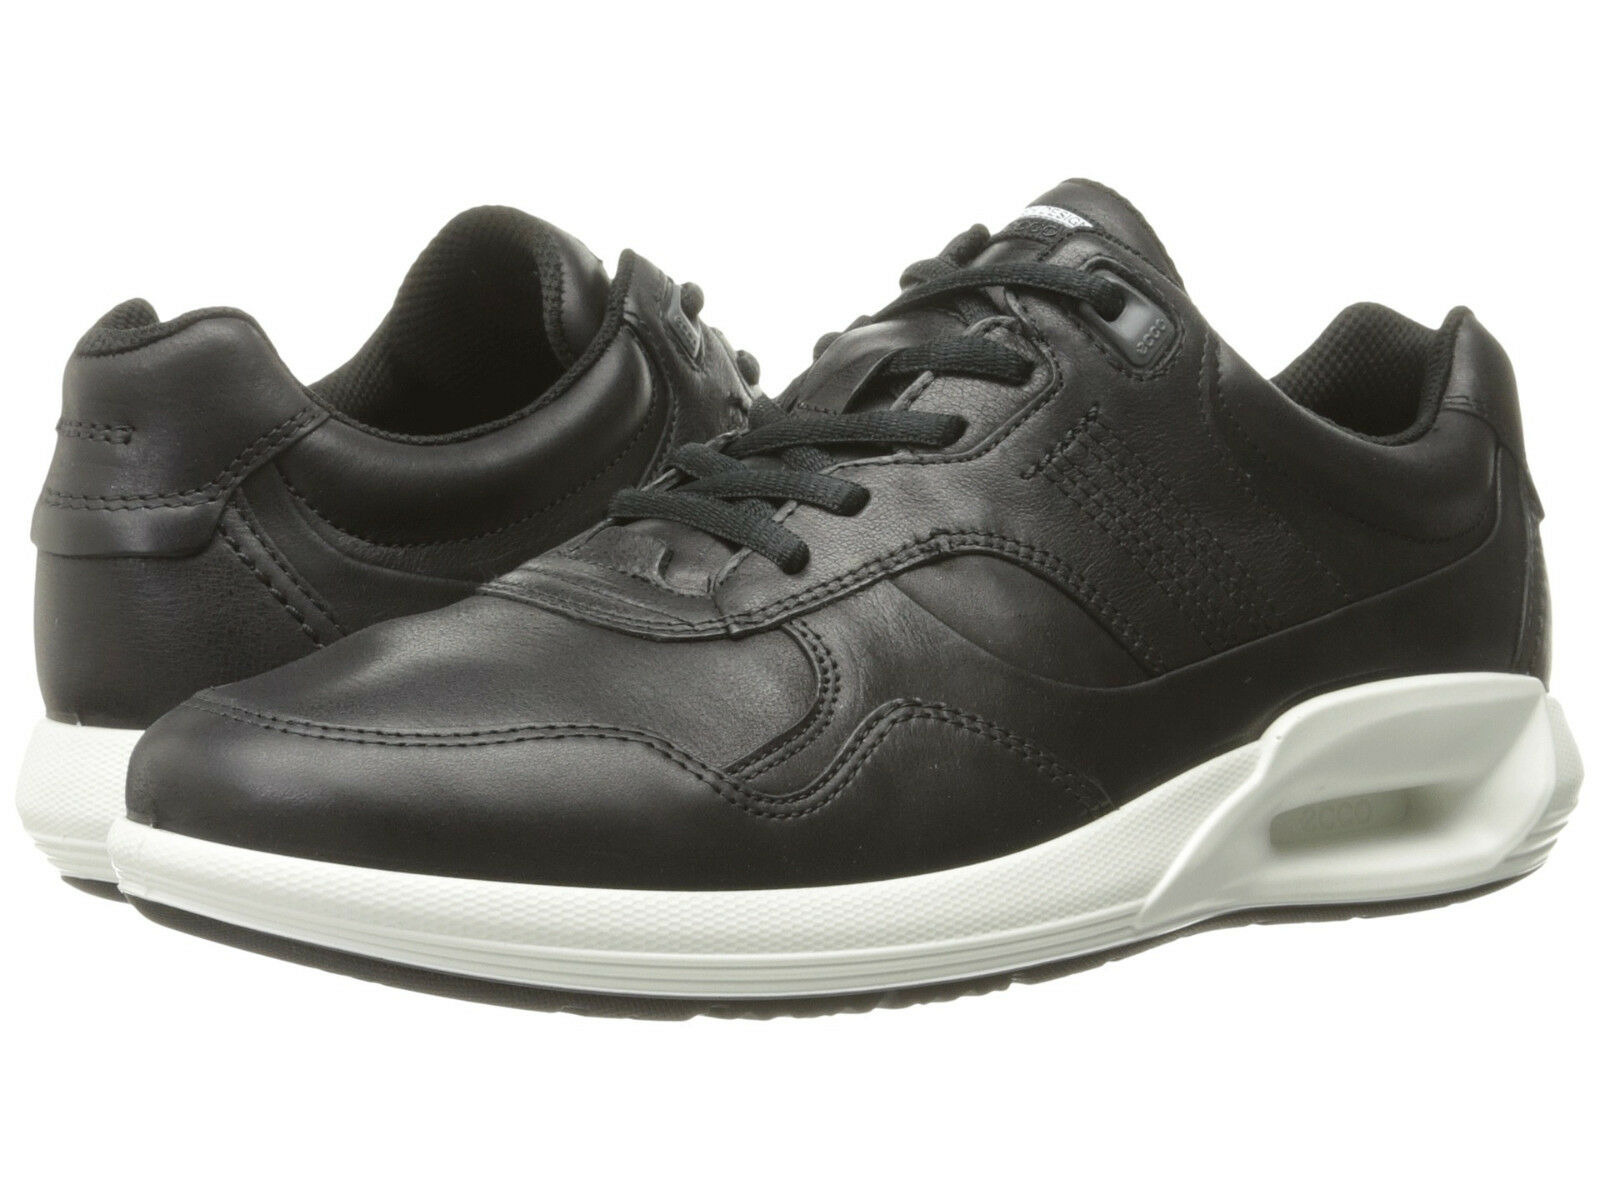 1c441ec1570263 Ecco Men s CS16 CS16 CS16 Sz US 11 M EU 45 Black Leather Low Sneakers shoes